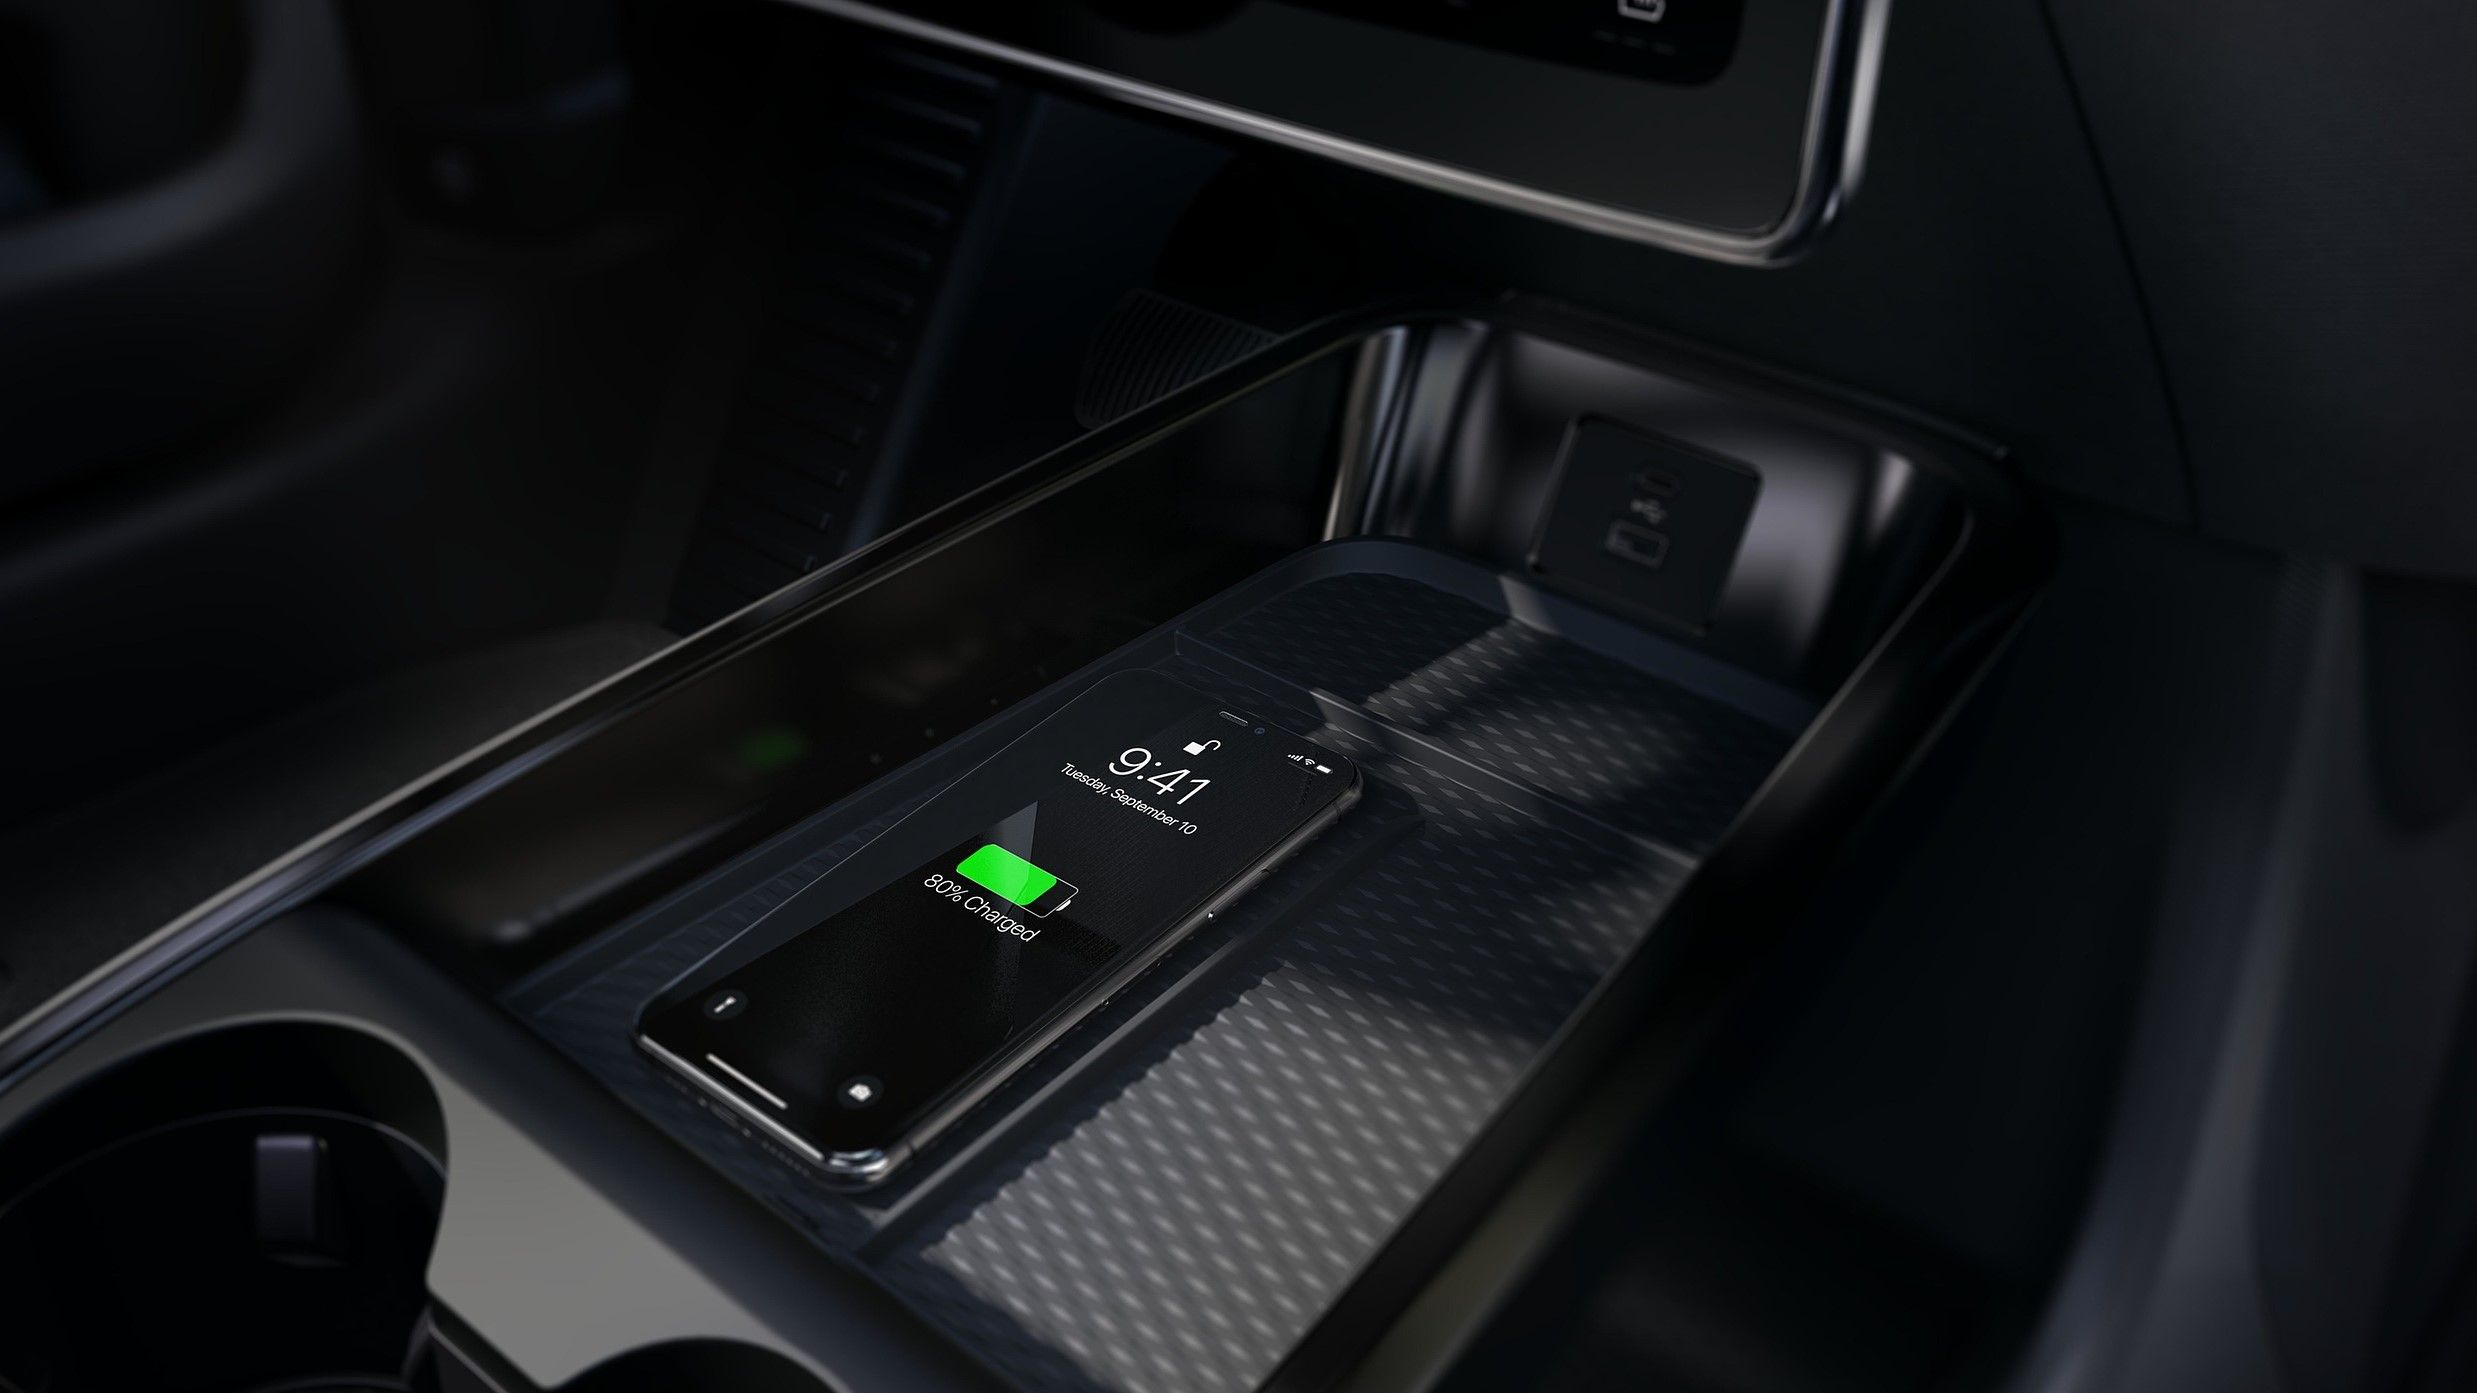 2021 ford mustang mach e interior wireless charging